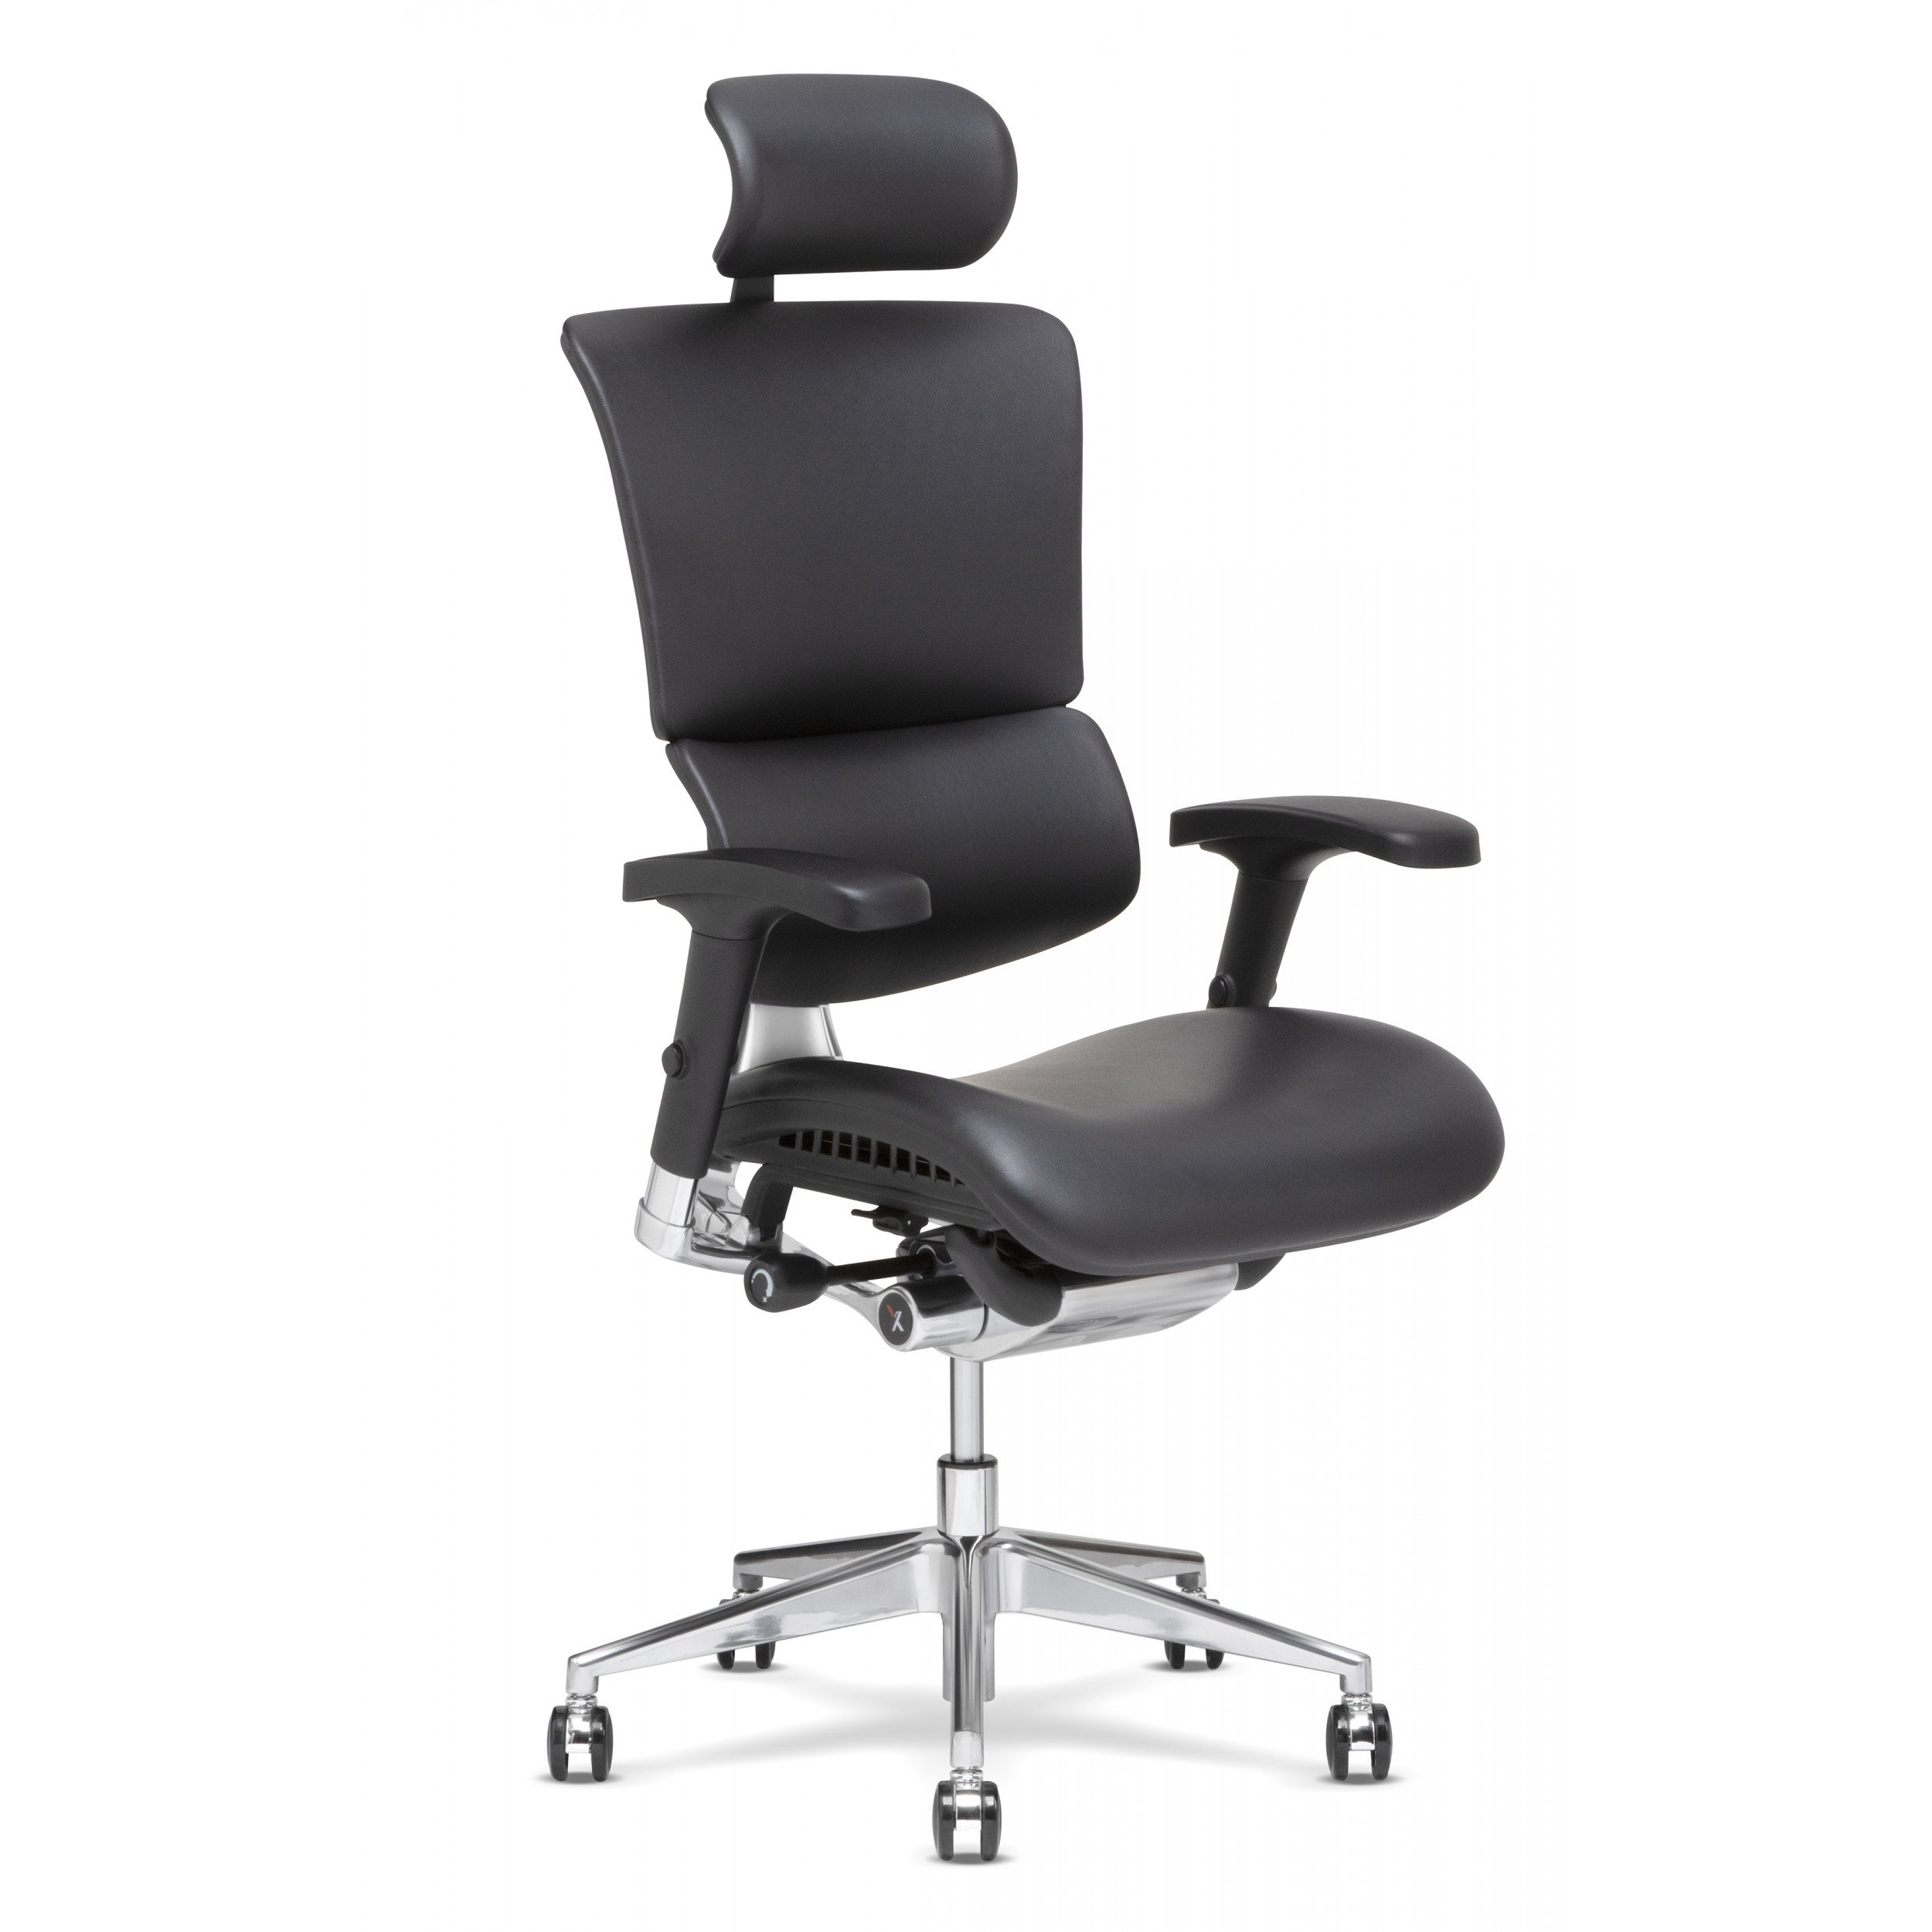 X4 Leather Executive Chair 21st Century Task Seating